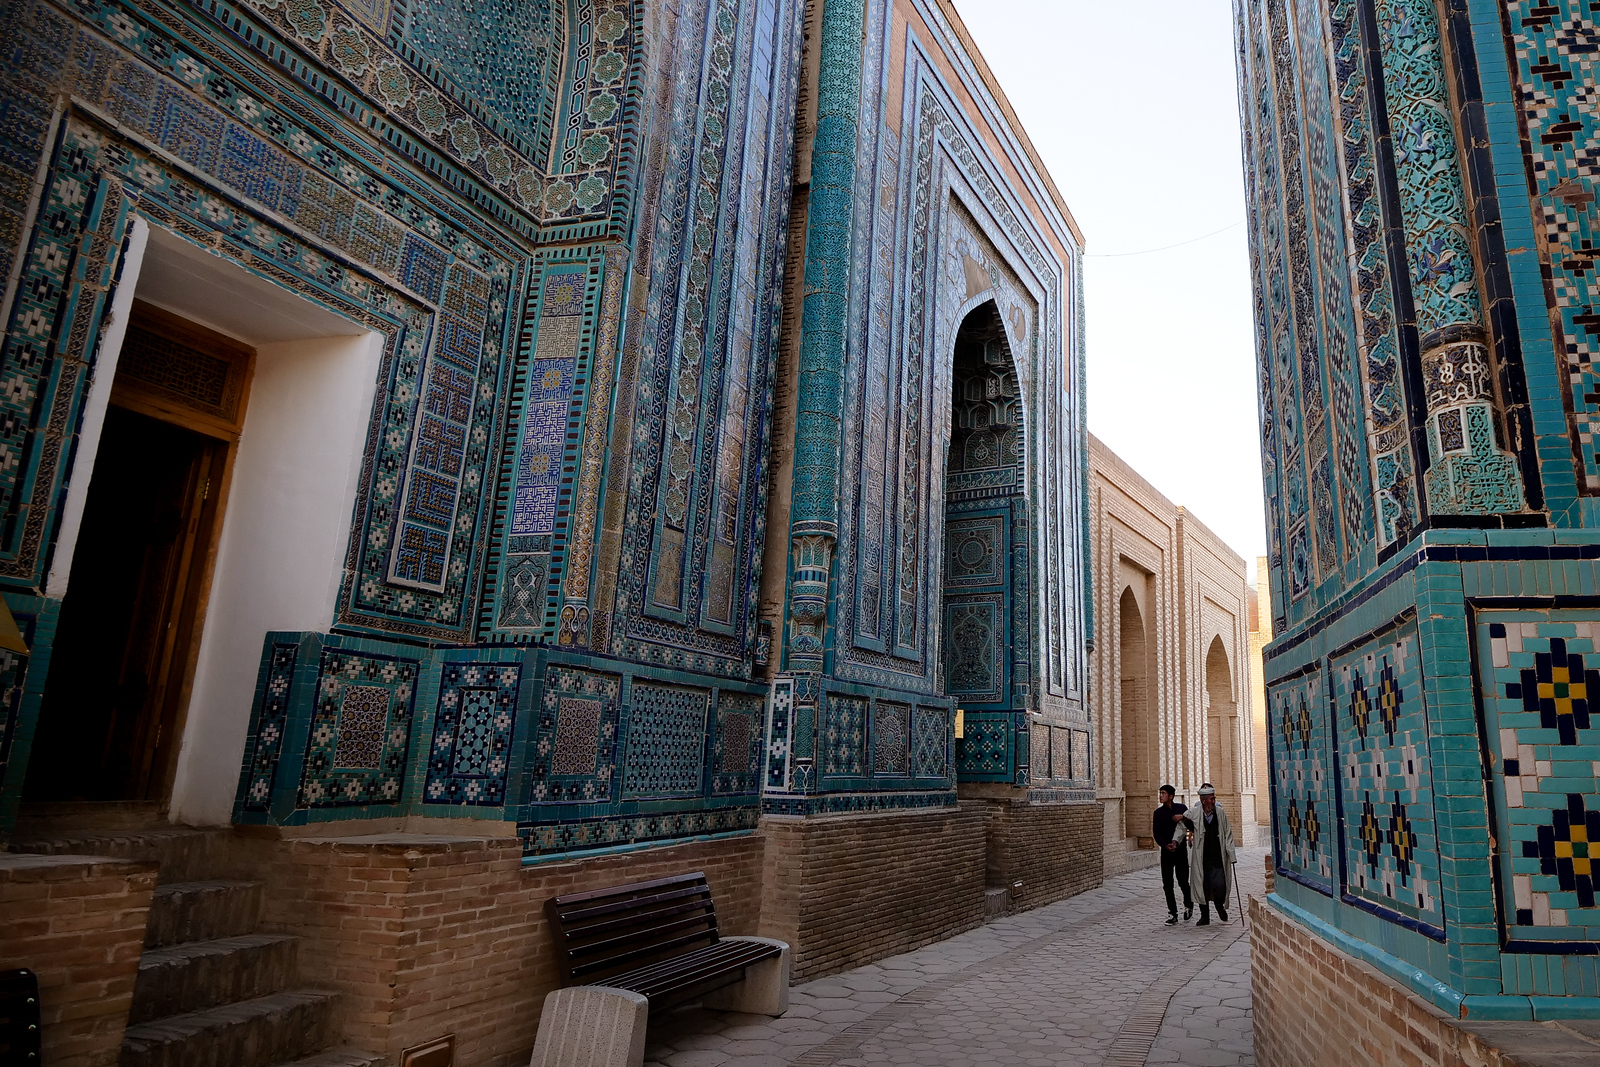 Samarkand travel guide